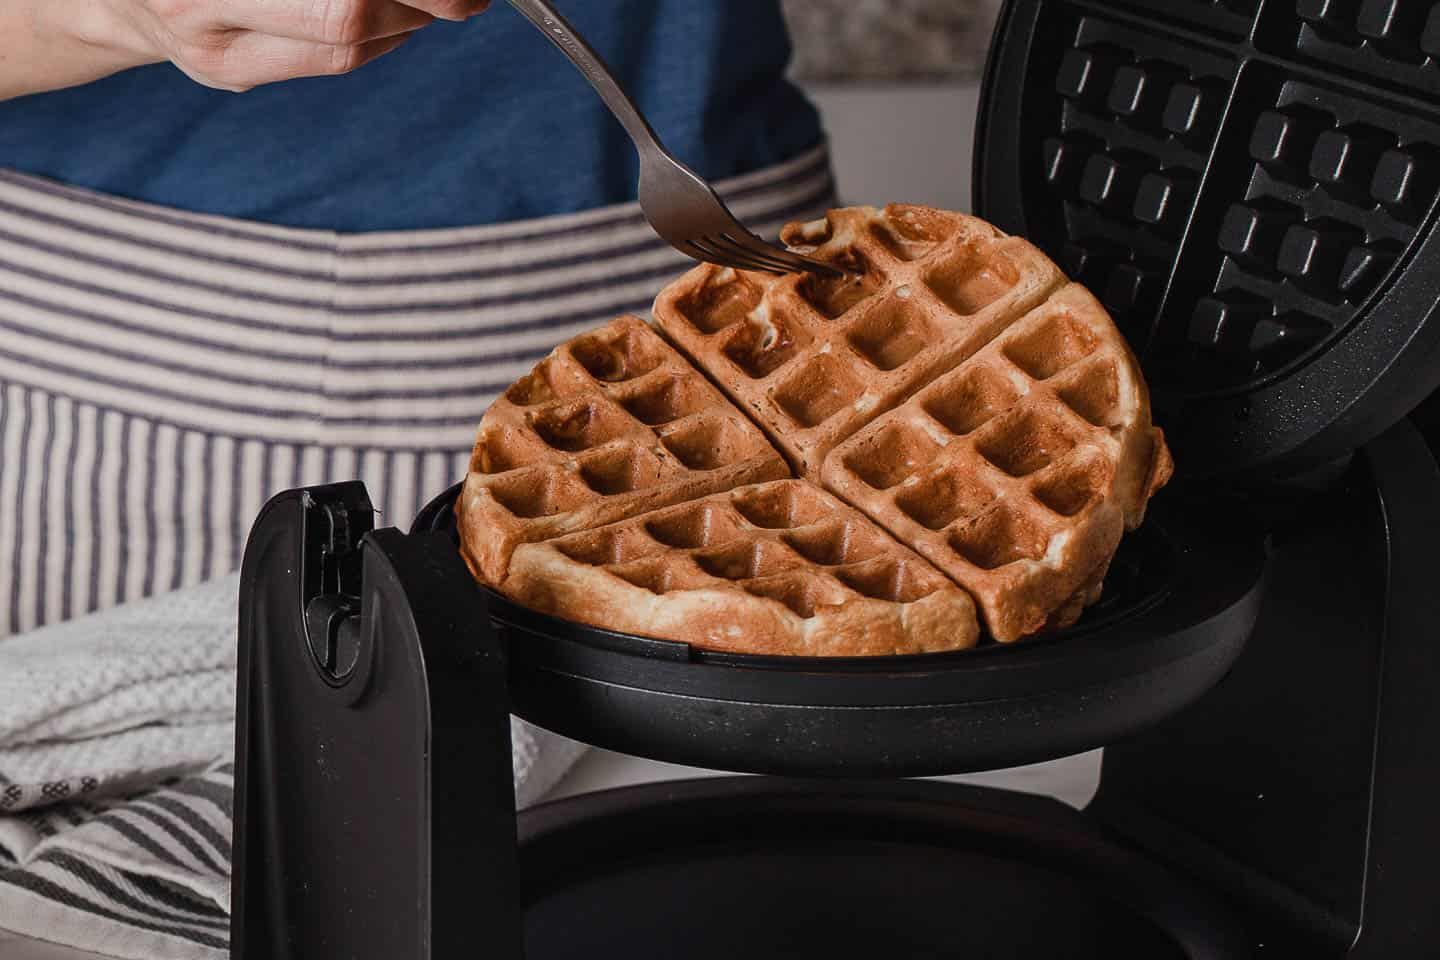 A waffle being removed from a griddle.